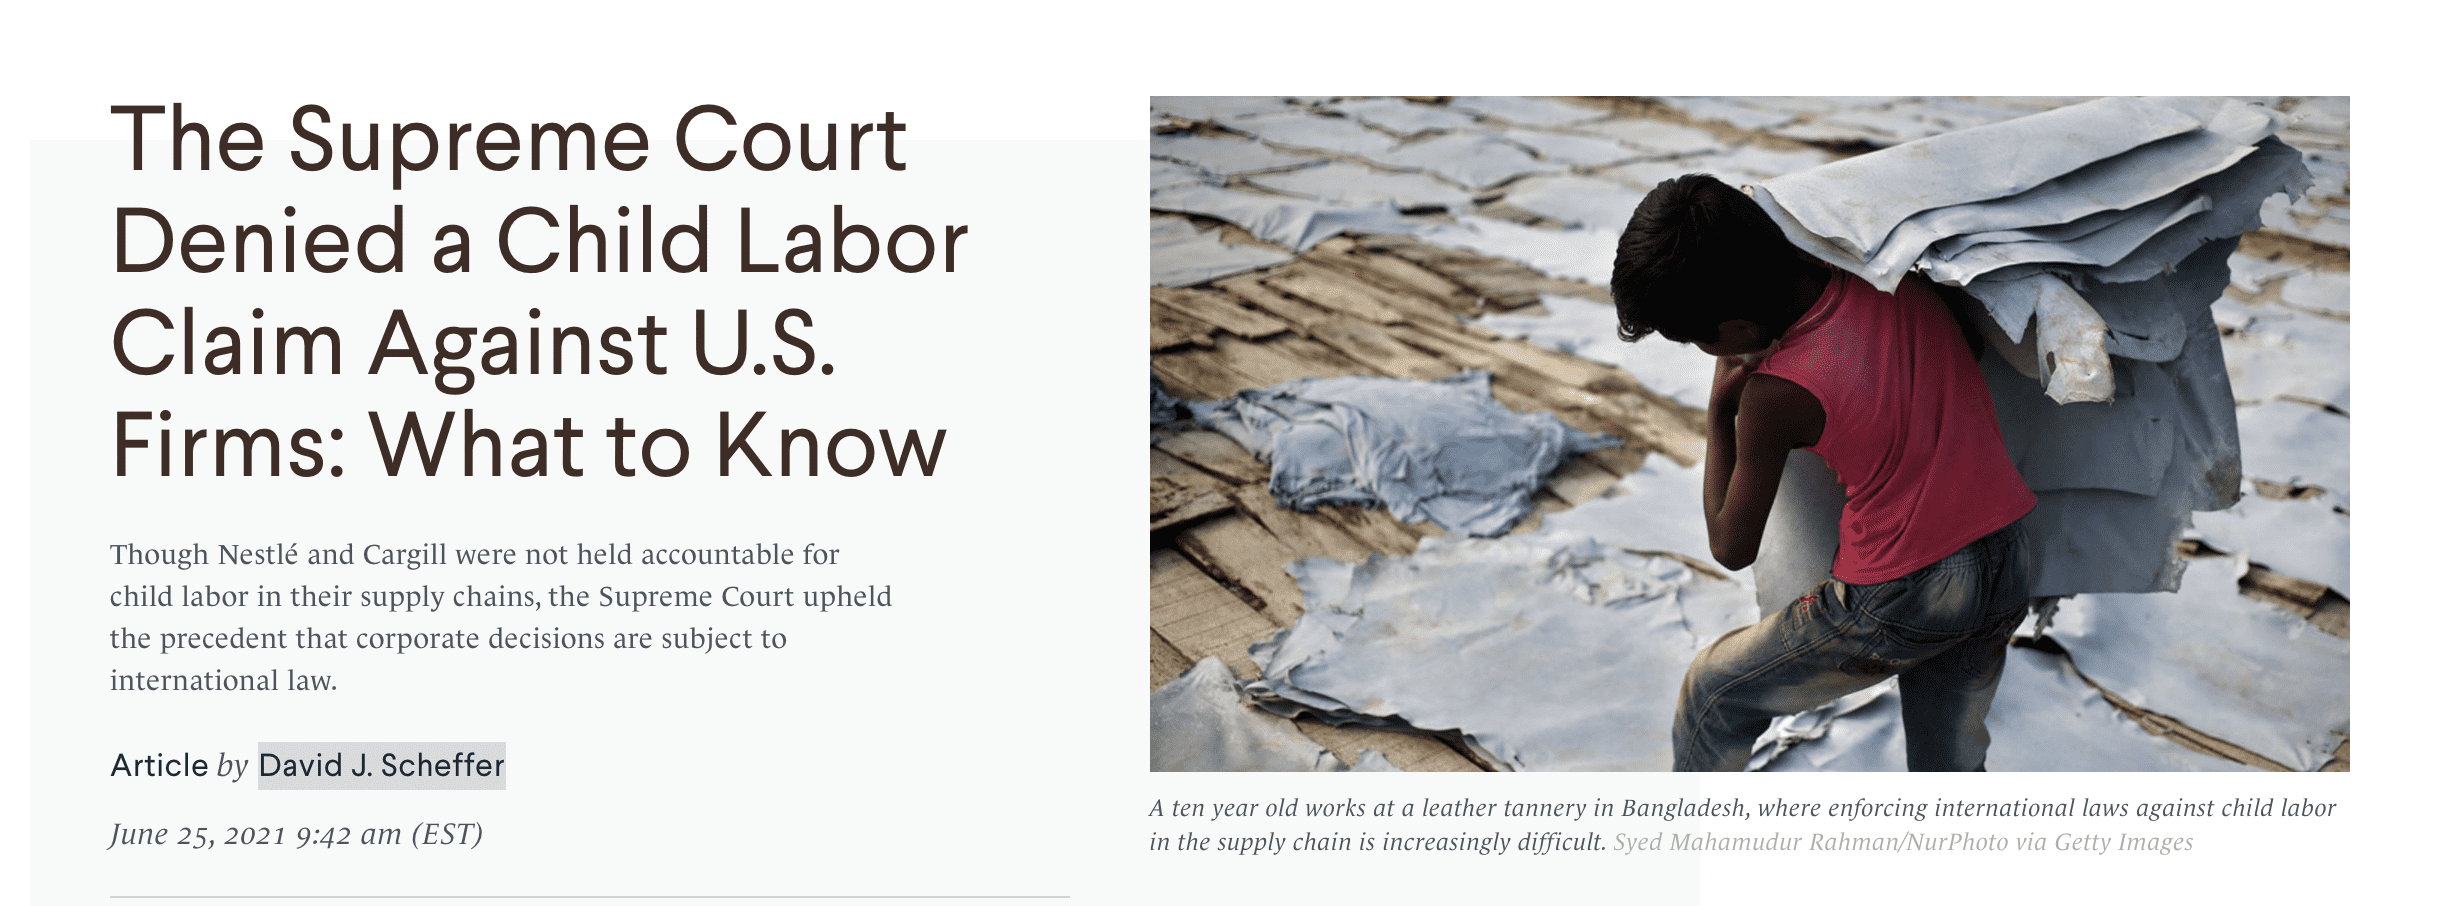 The Supreme Court Denied a Child Labor Claim Against U.S. Firms: What to Know